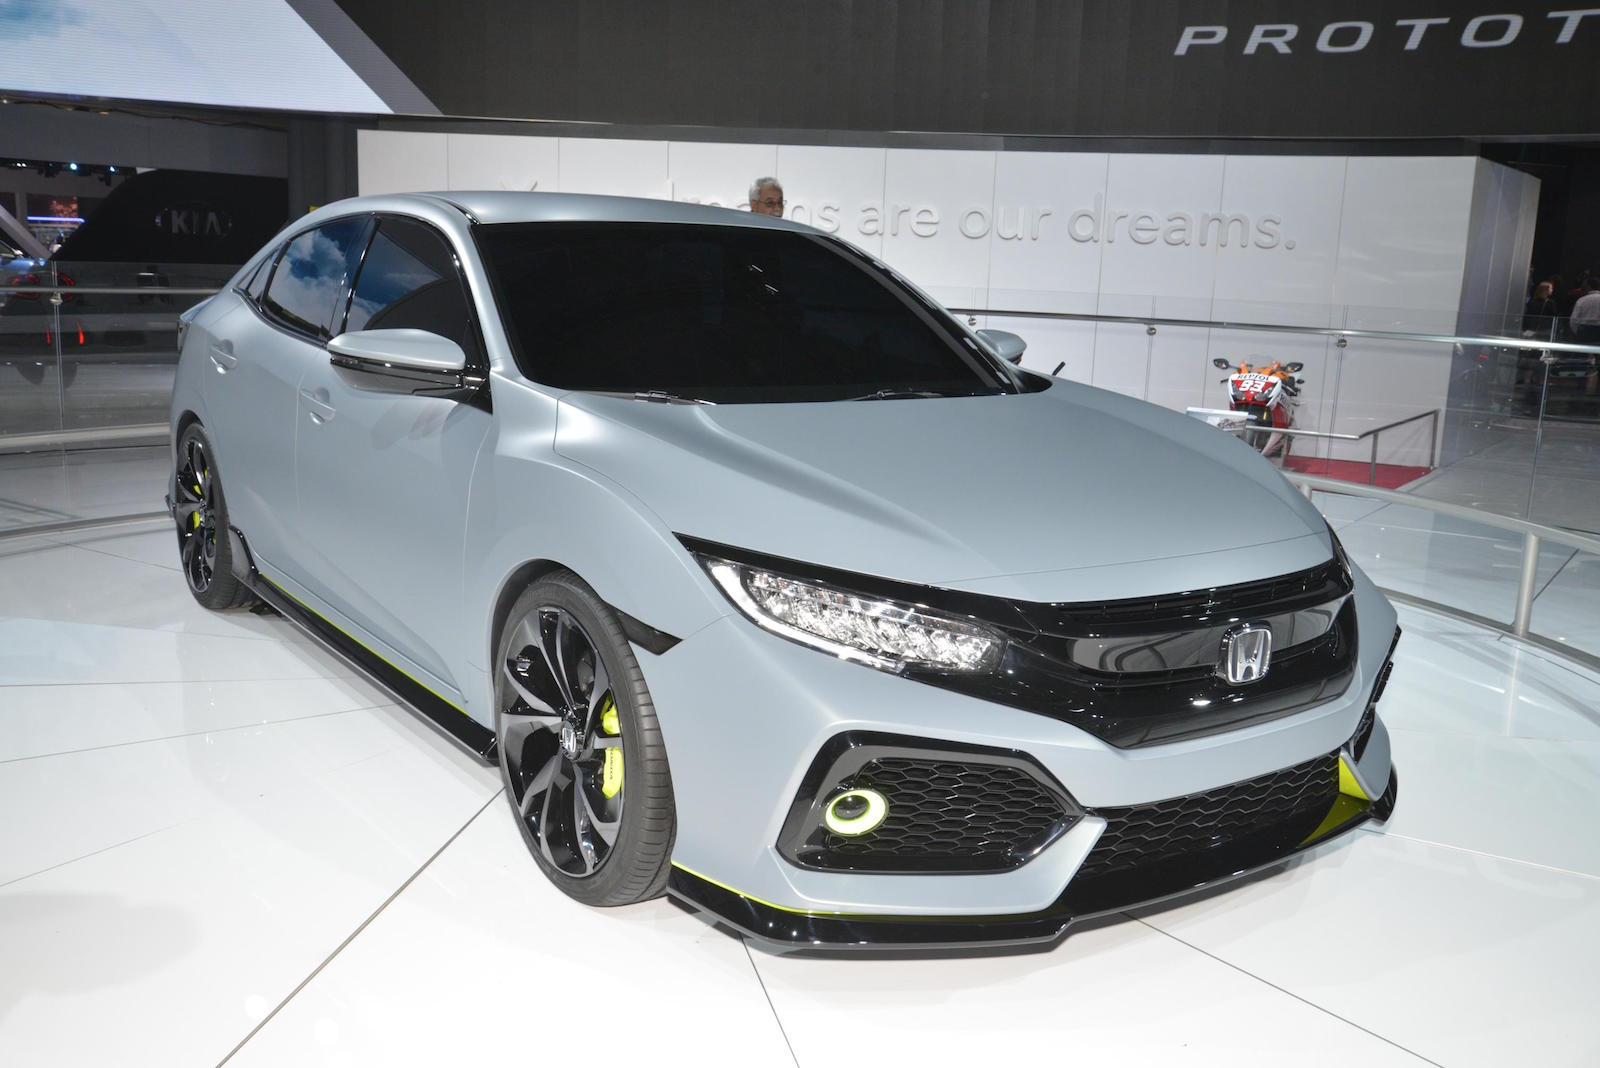 2017 honda civic hatchback to offer turbo engine 6 speed. Black Bedroom Furniture Sets. Home Design Ideas